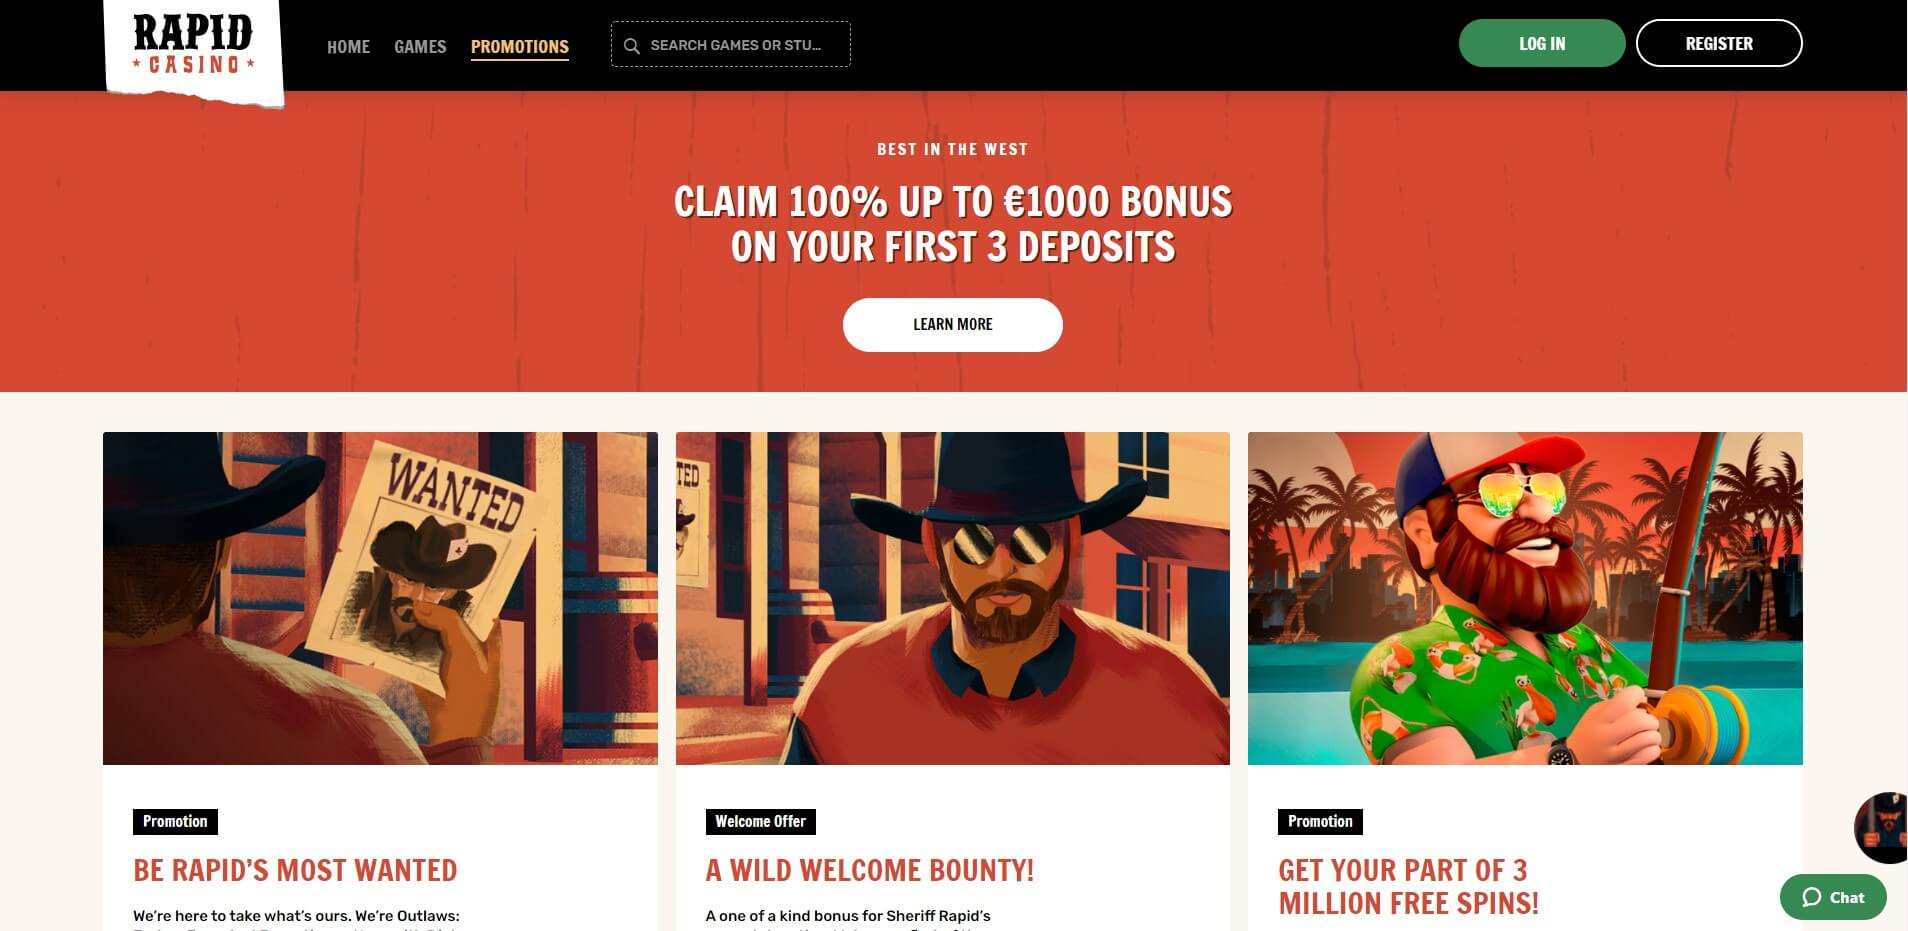 Promotions at Rapid Casino